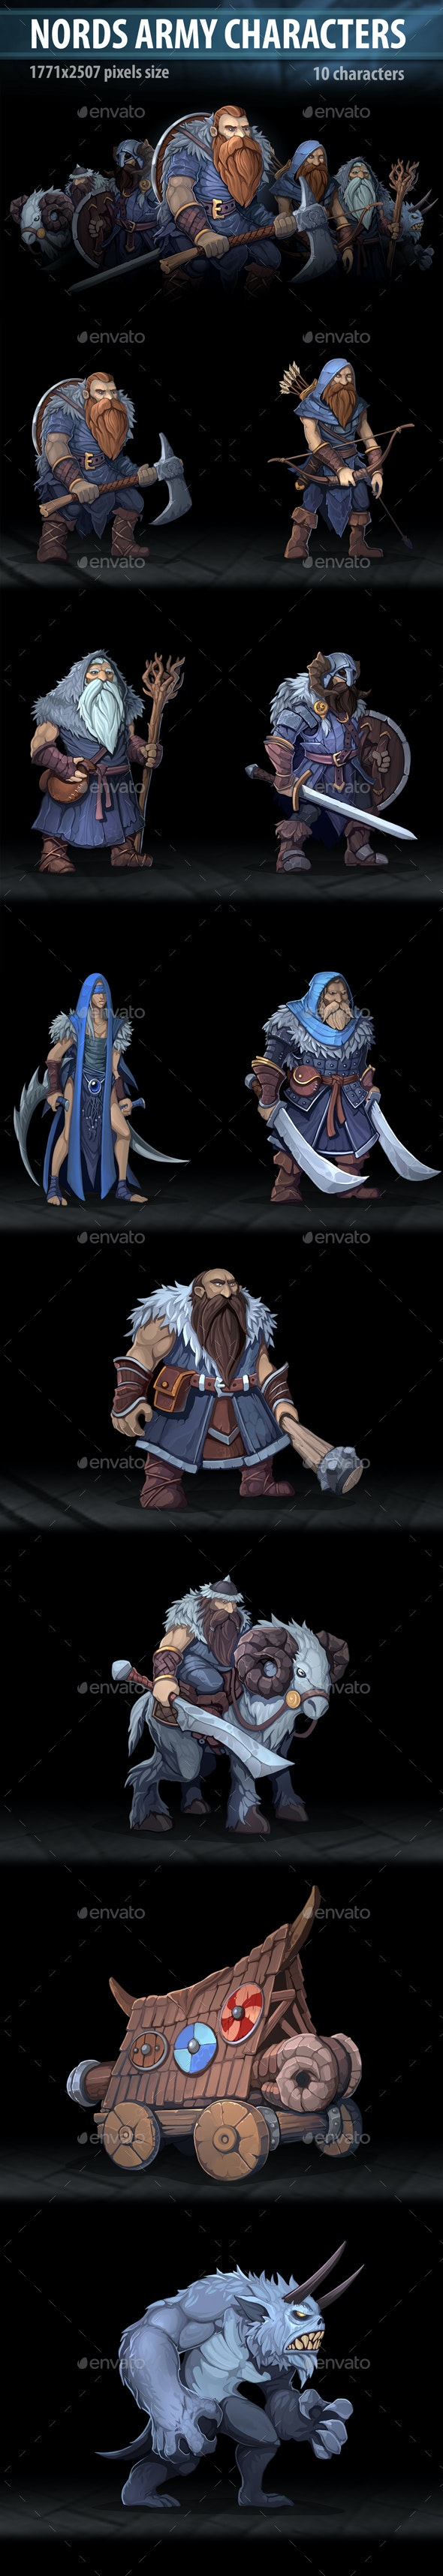 Nords Army Characters